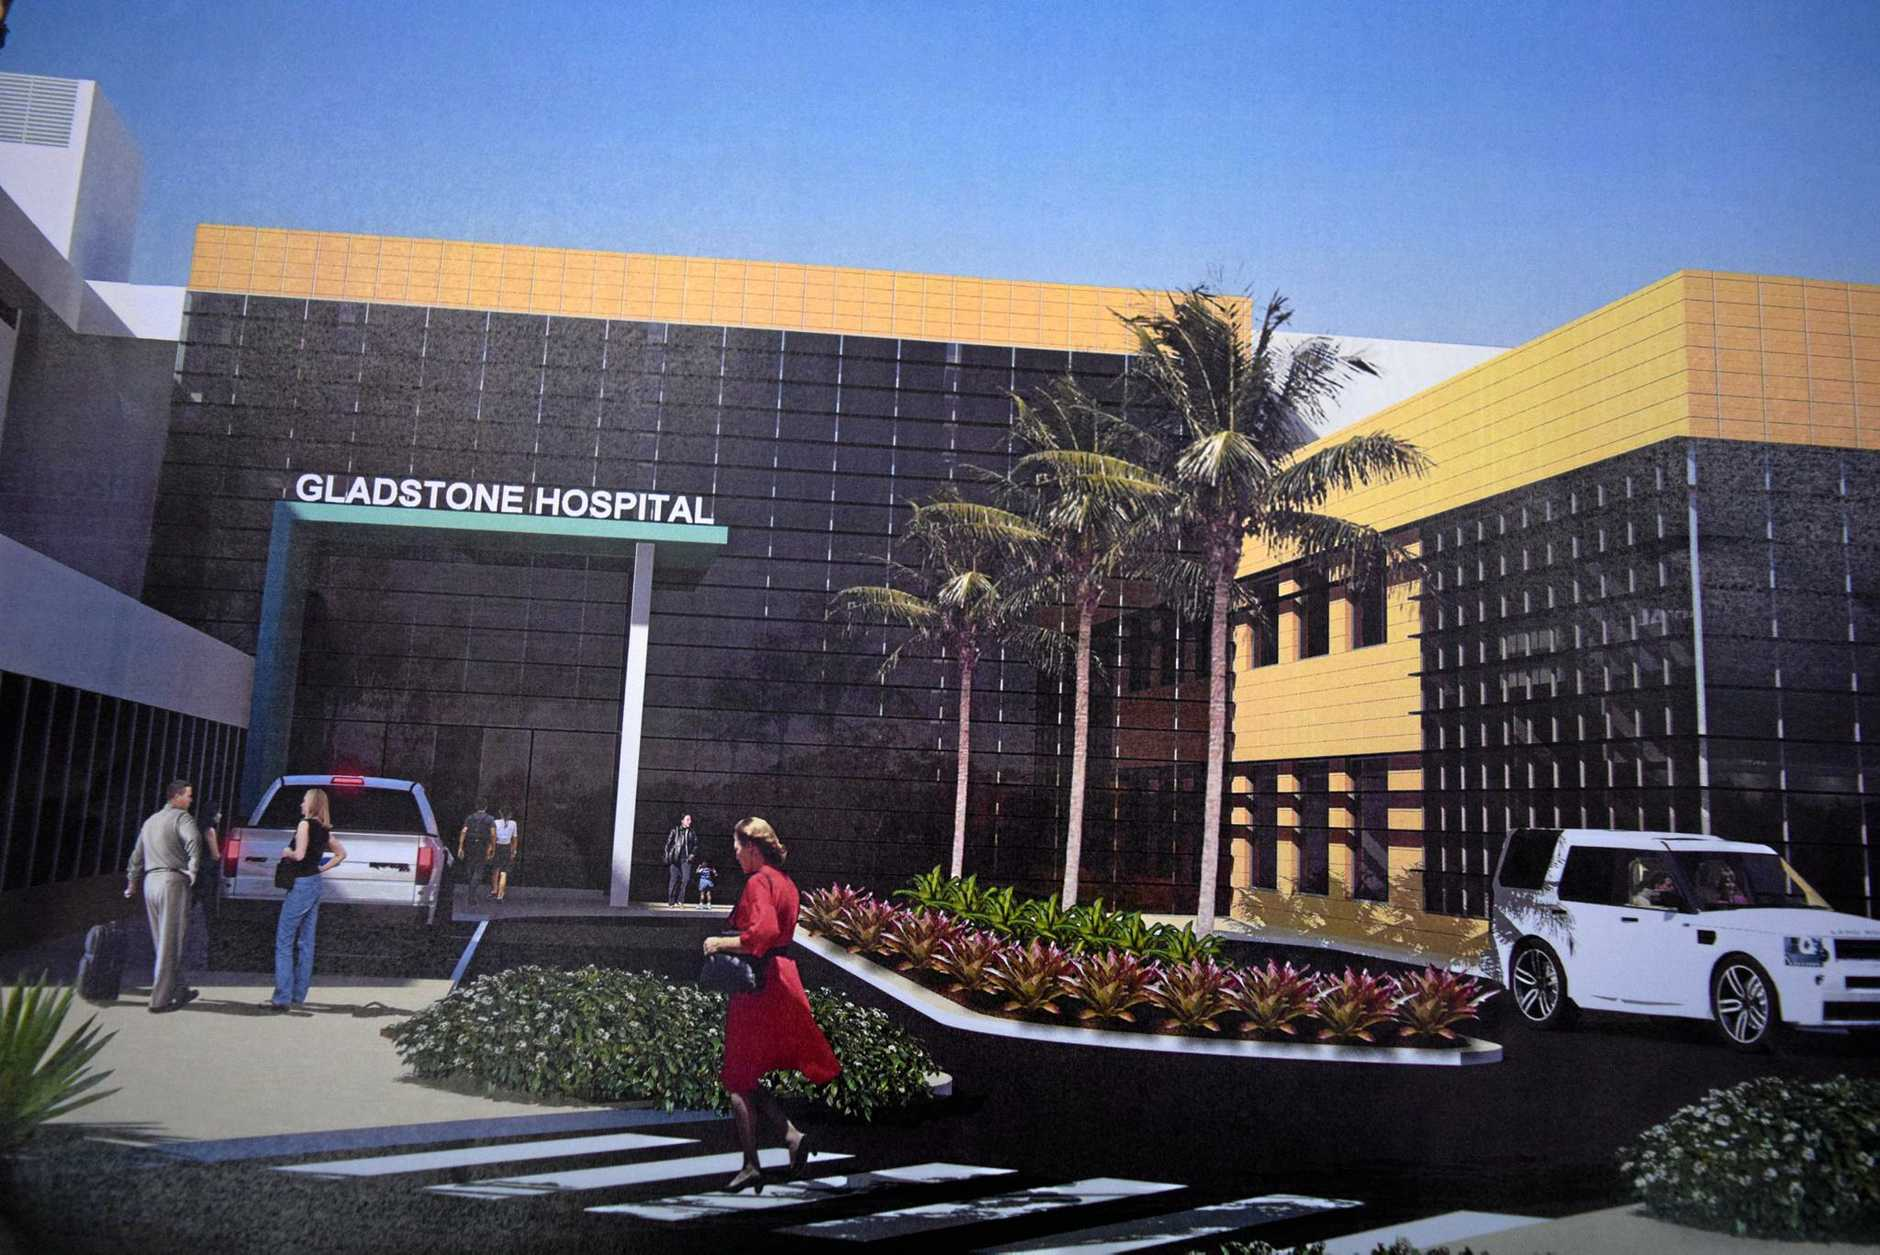 Artist impressions have been released of what the future Gladstone Hospital could look like with a $42m upgrade.